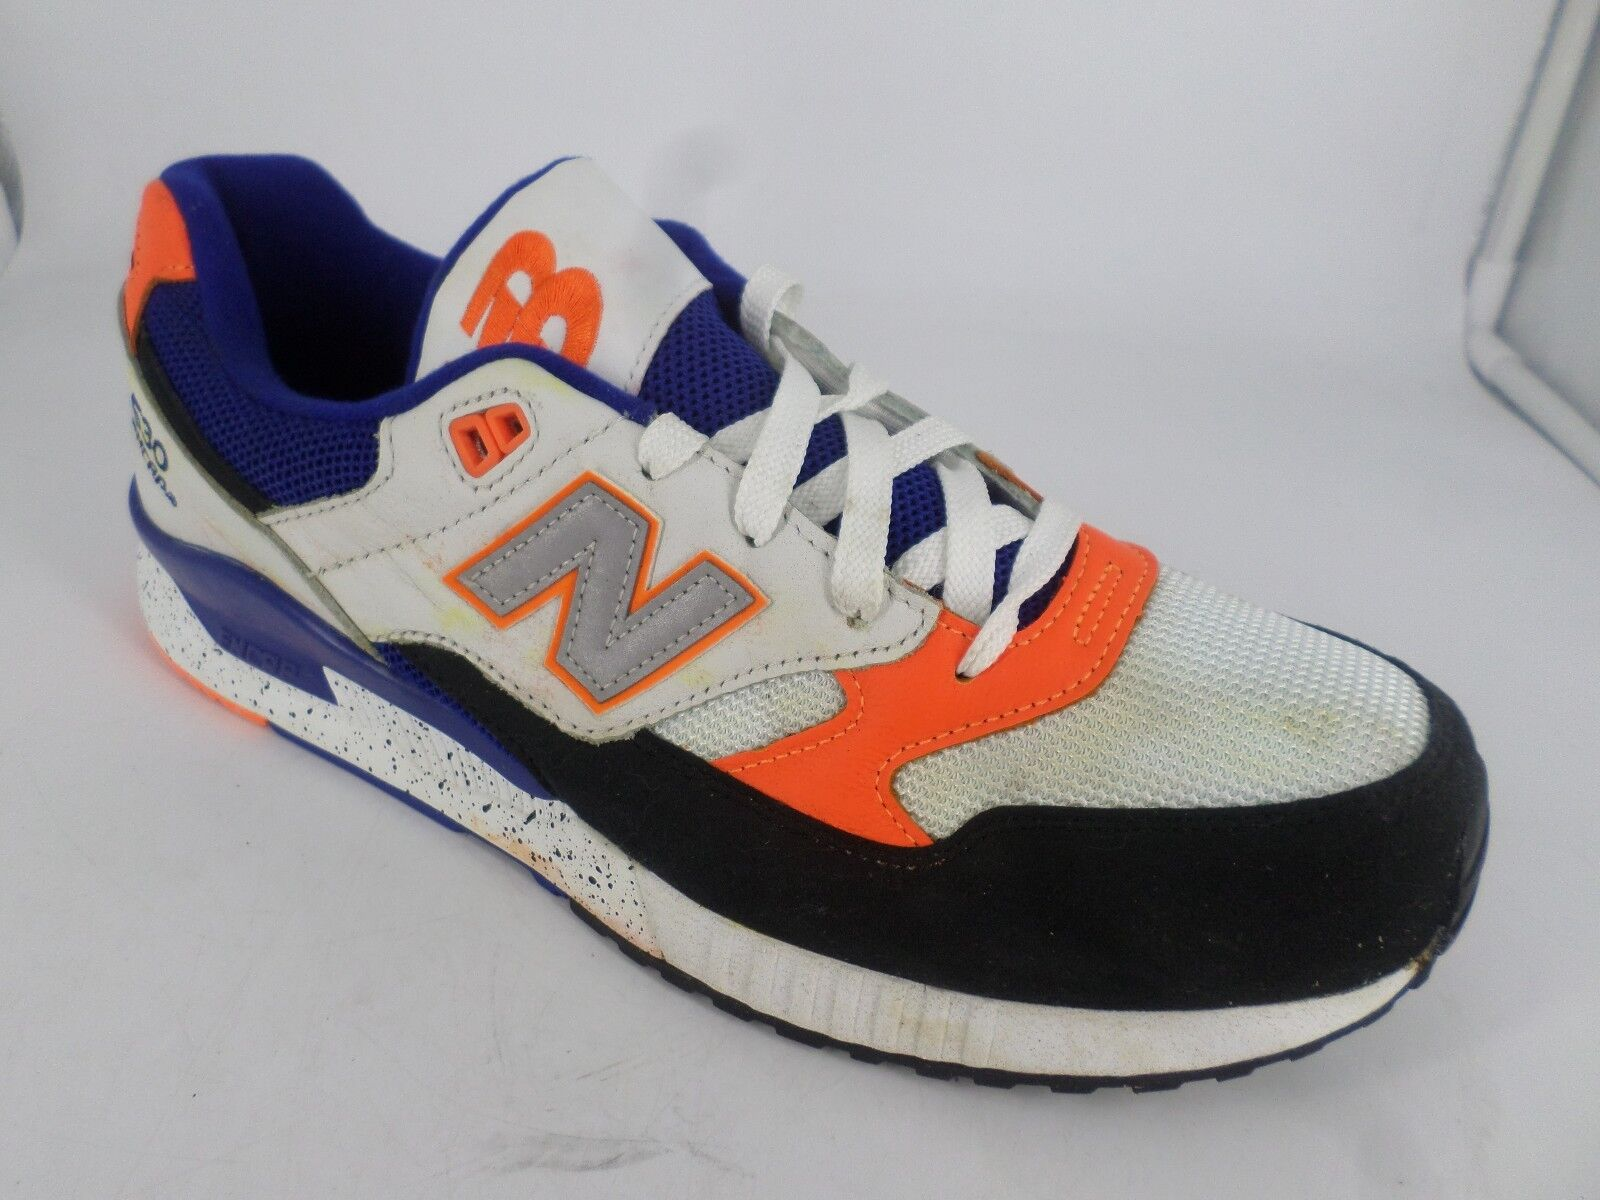 New Balance 530 Encap Trainers White, Blue   Blue Orange LN087 UU 10 fab580